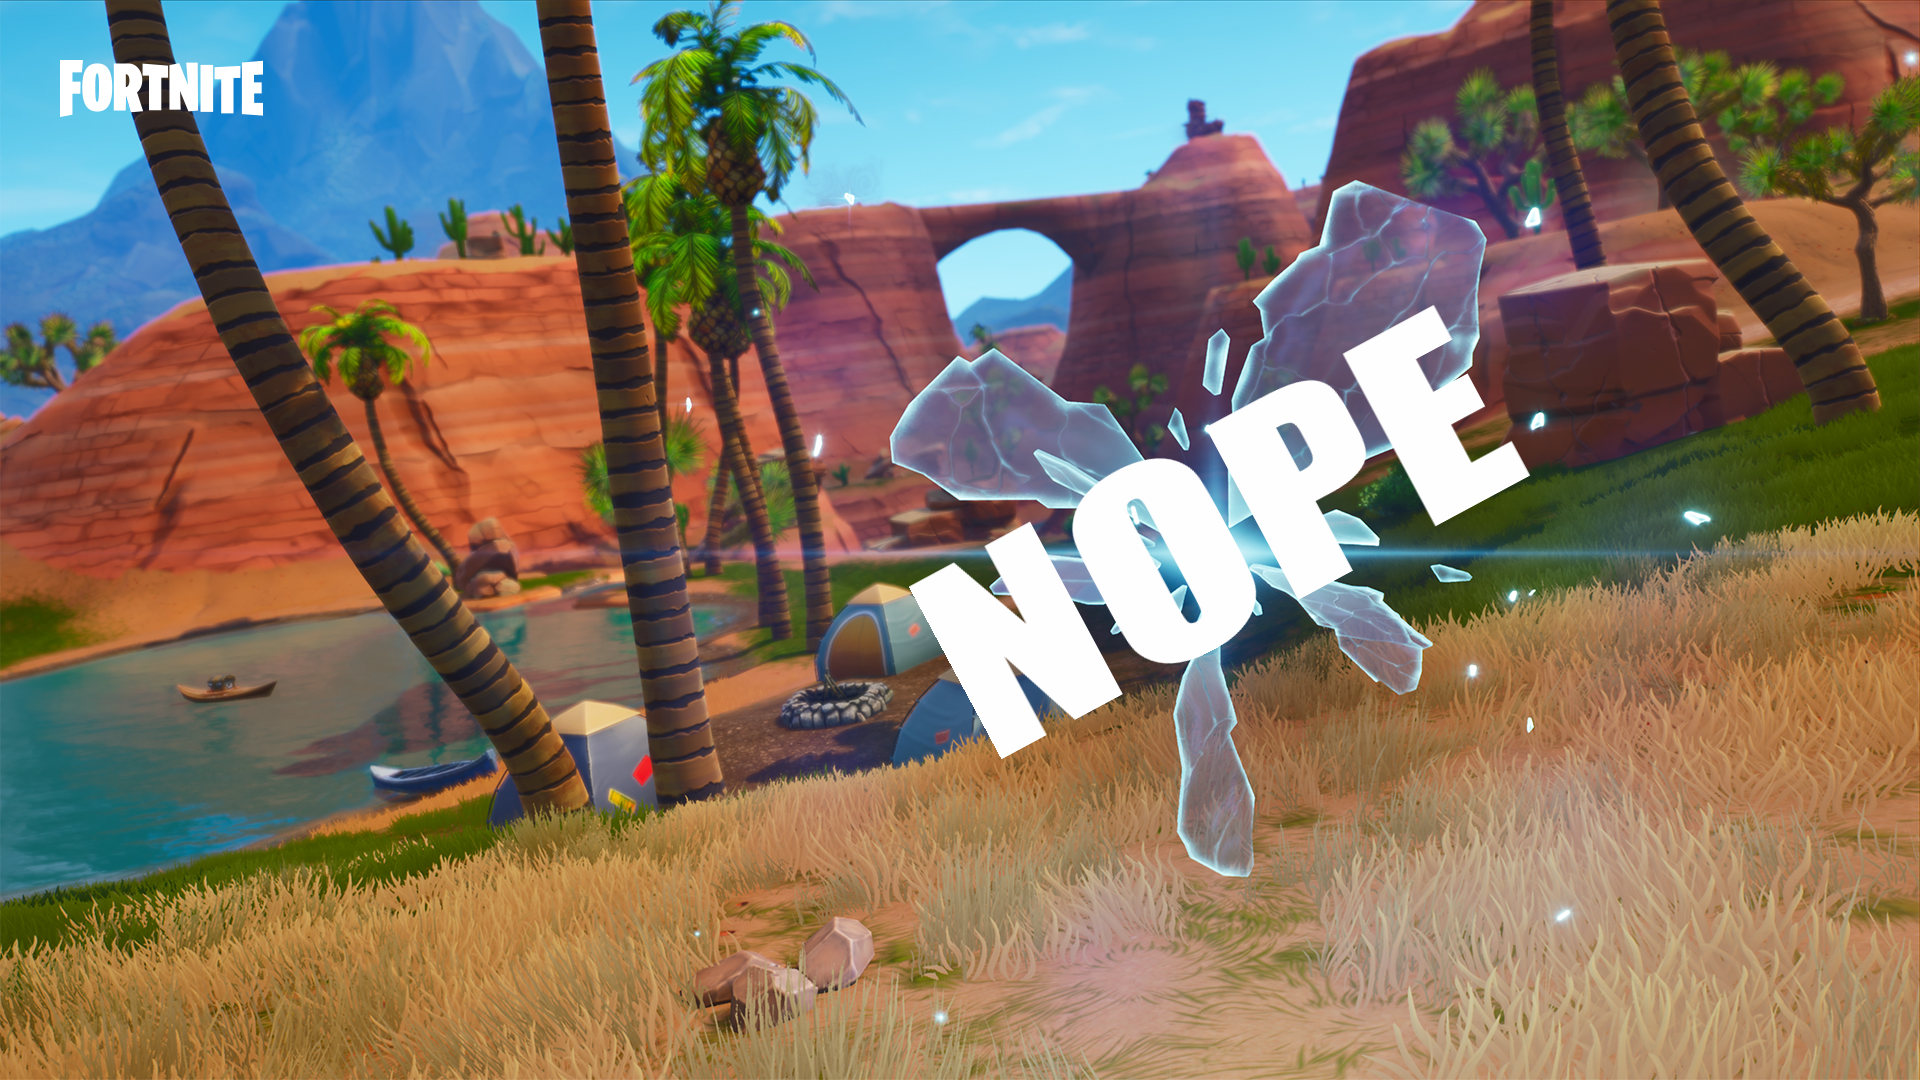 fortnite battle royale rifts disabled while epic investigates another bug fortnite news and statistics ss1 - fortnite atk disabled